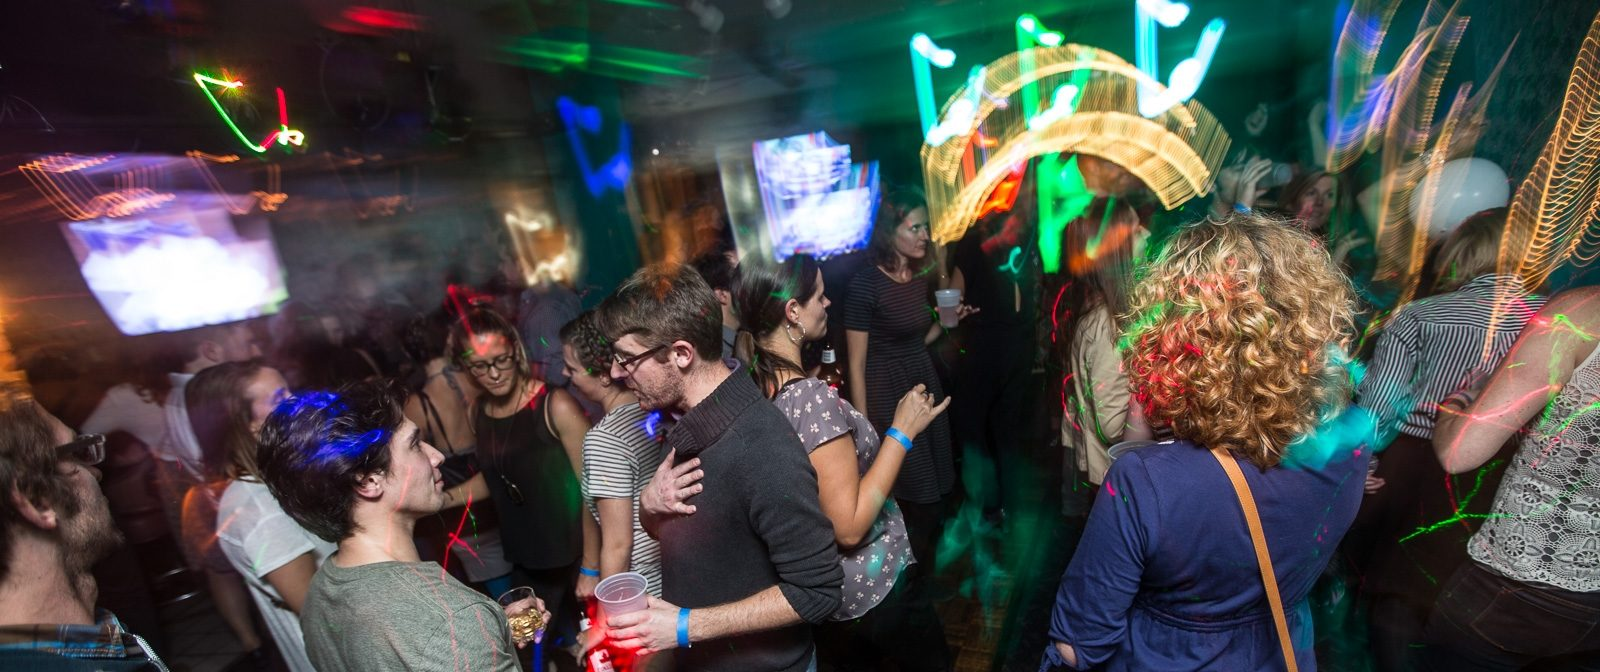 Several people dance the night away at Milkie's on Elmwood. (Chuck Alaimo/Special to The News)